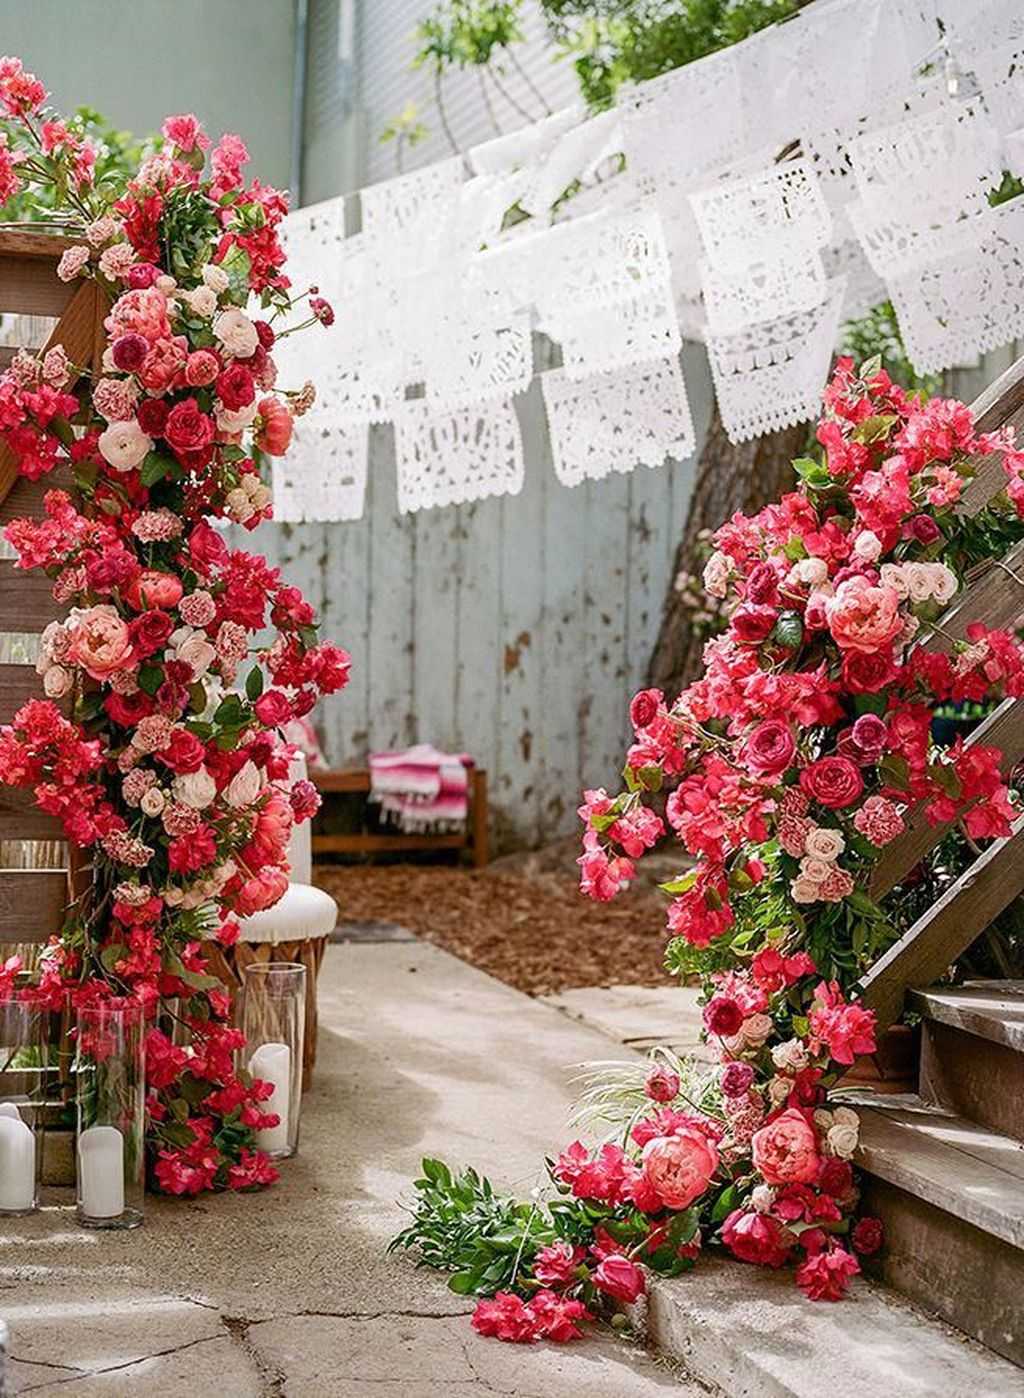 Fabulous Floral Theme Party Decor Ideas Best For Summertime 17